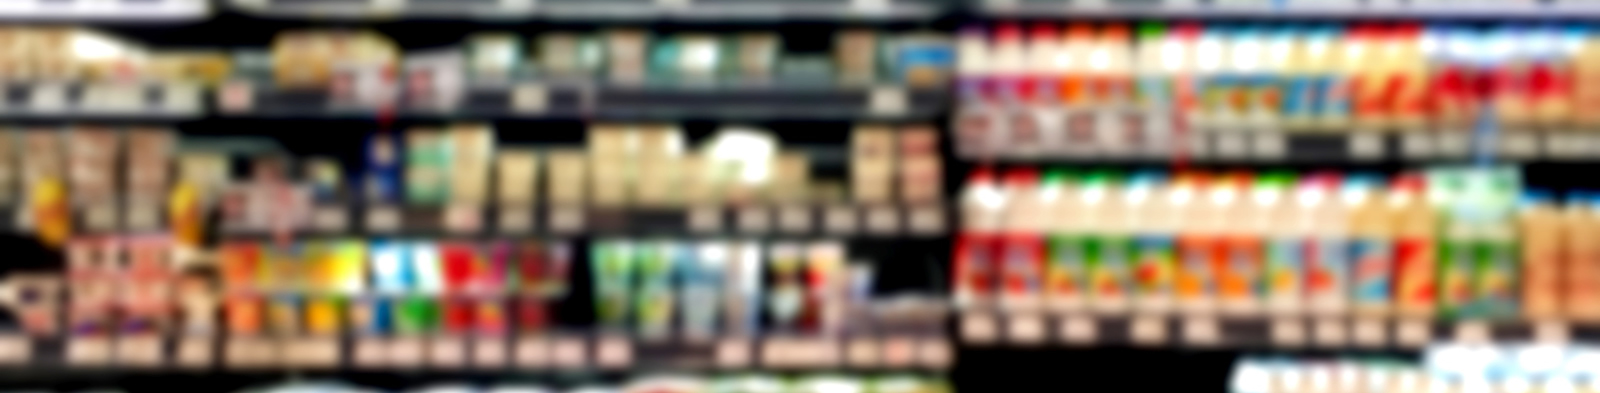 Blurred supermarket food products